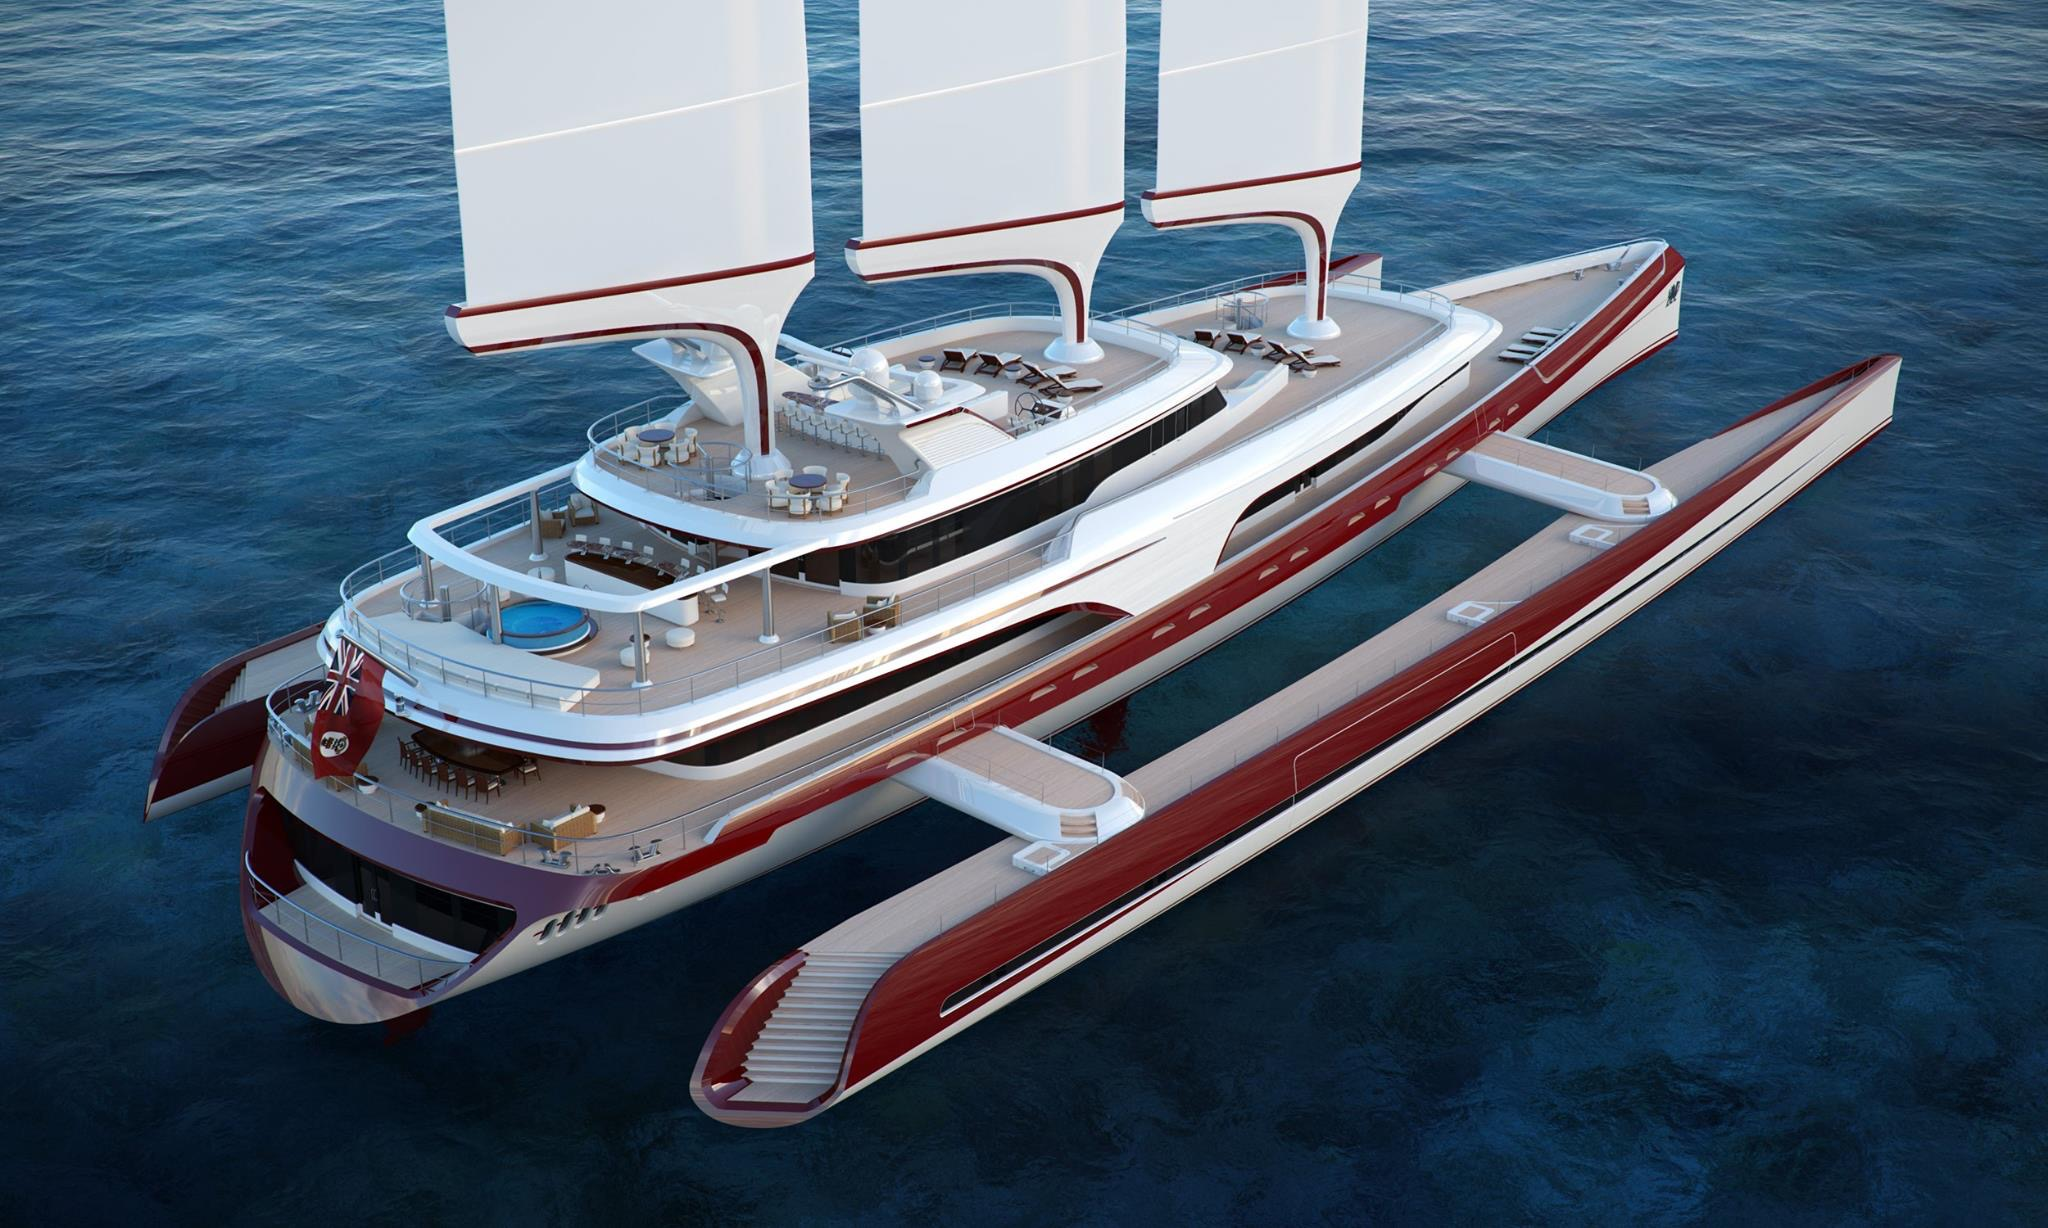 Superyacht Sales - Points to Consider